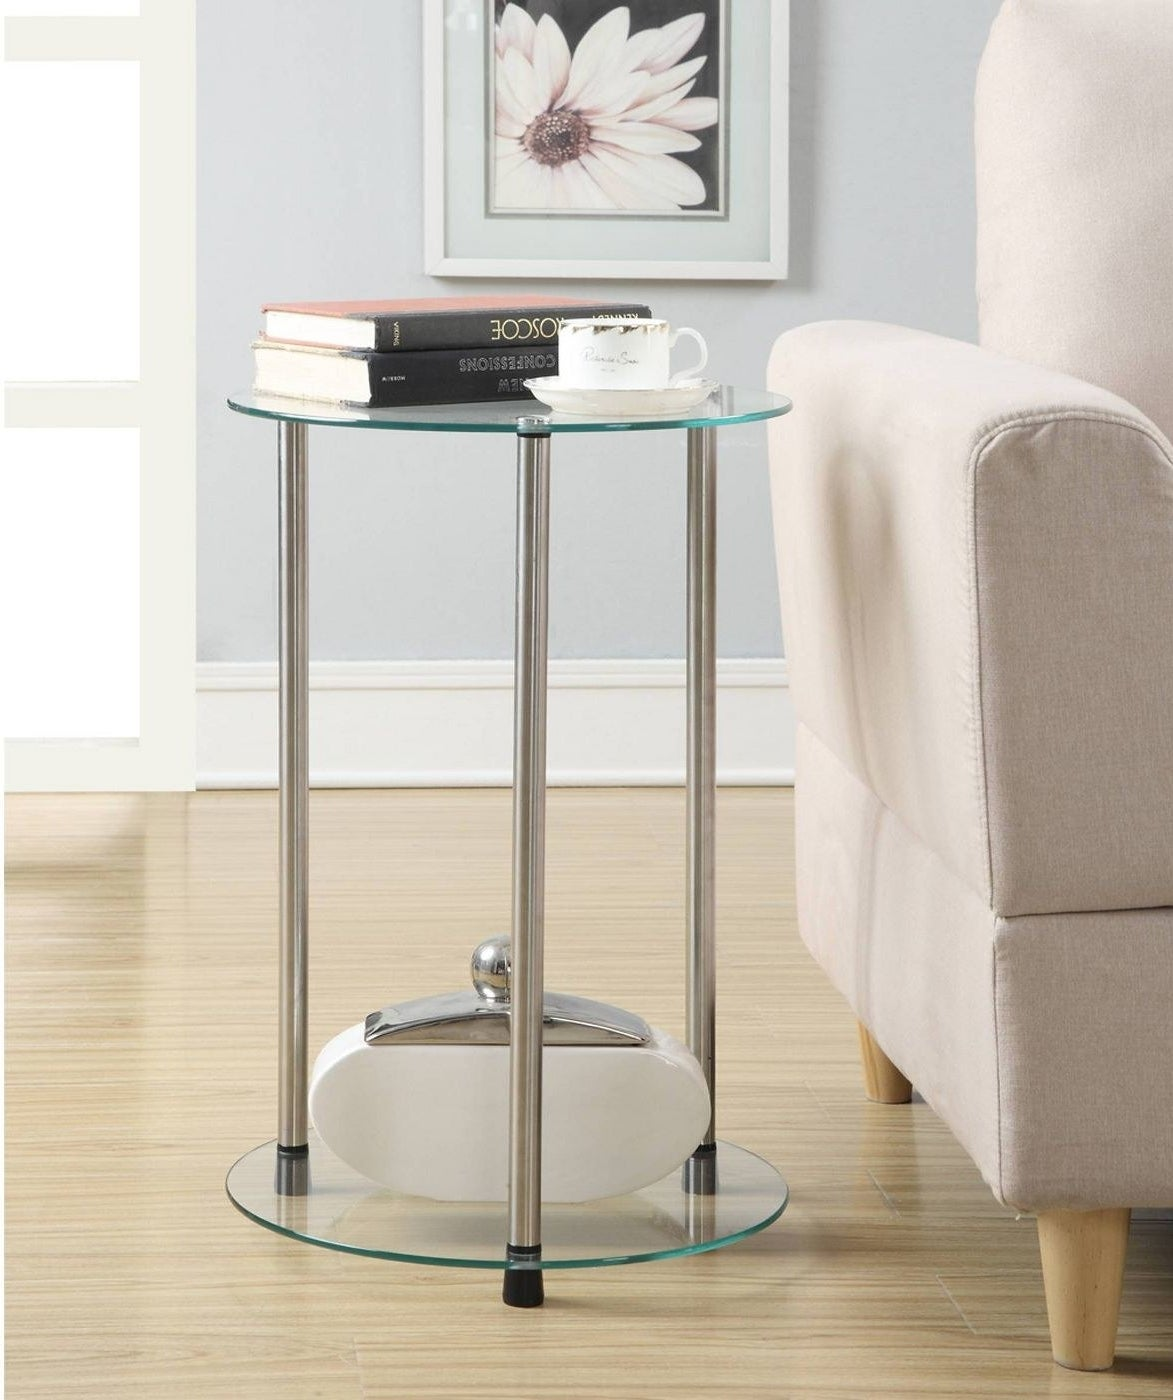 A glass side table in a home